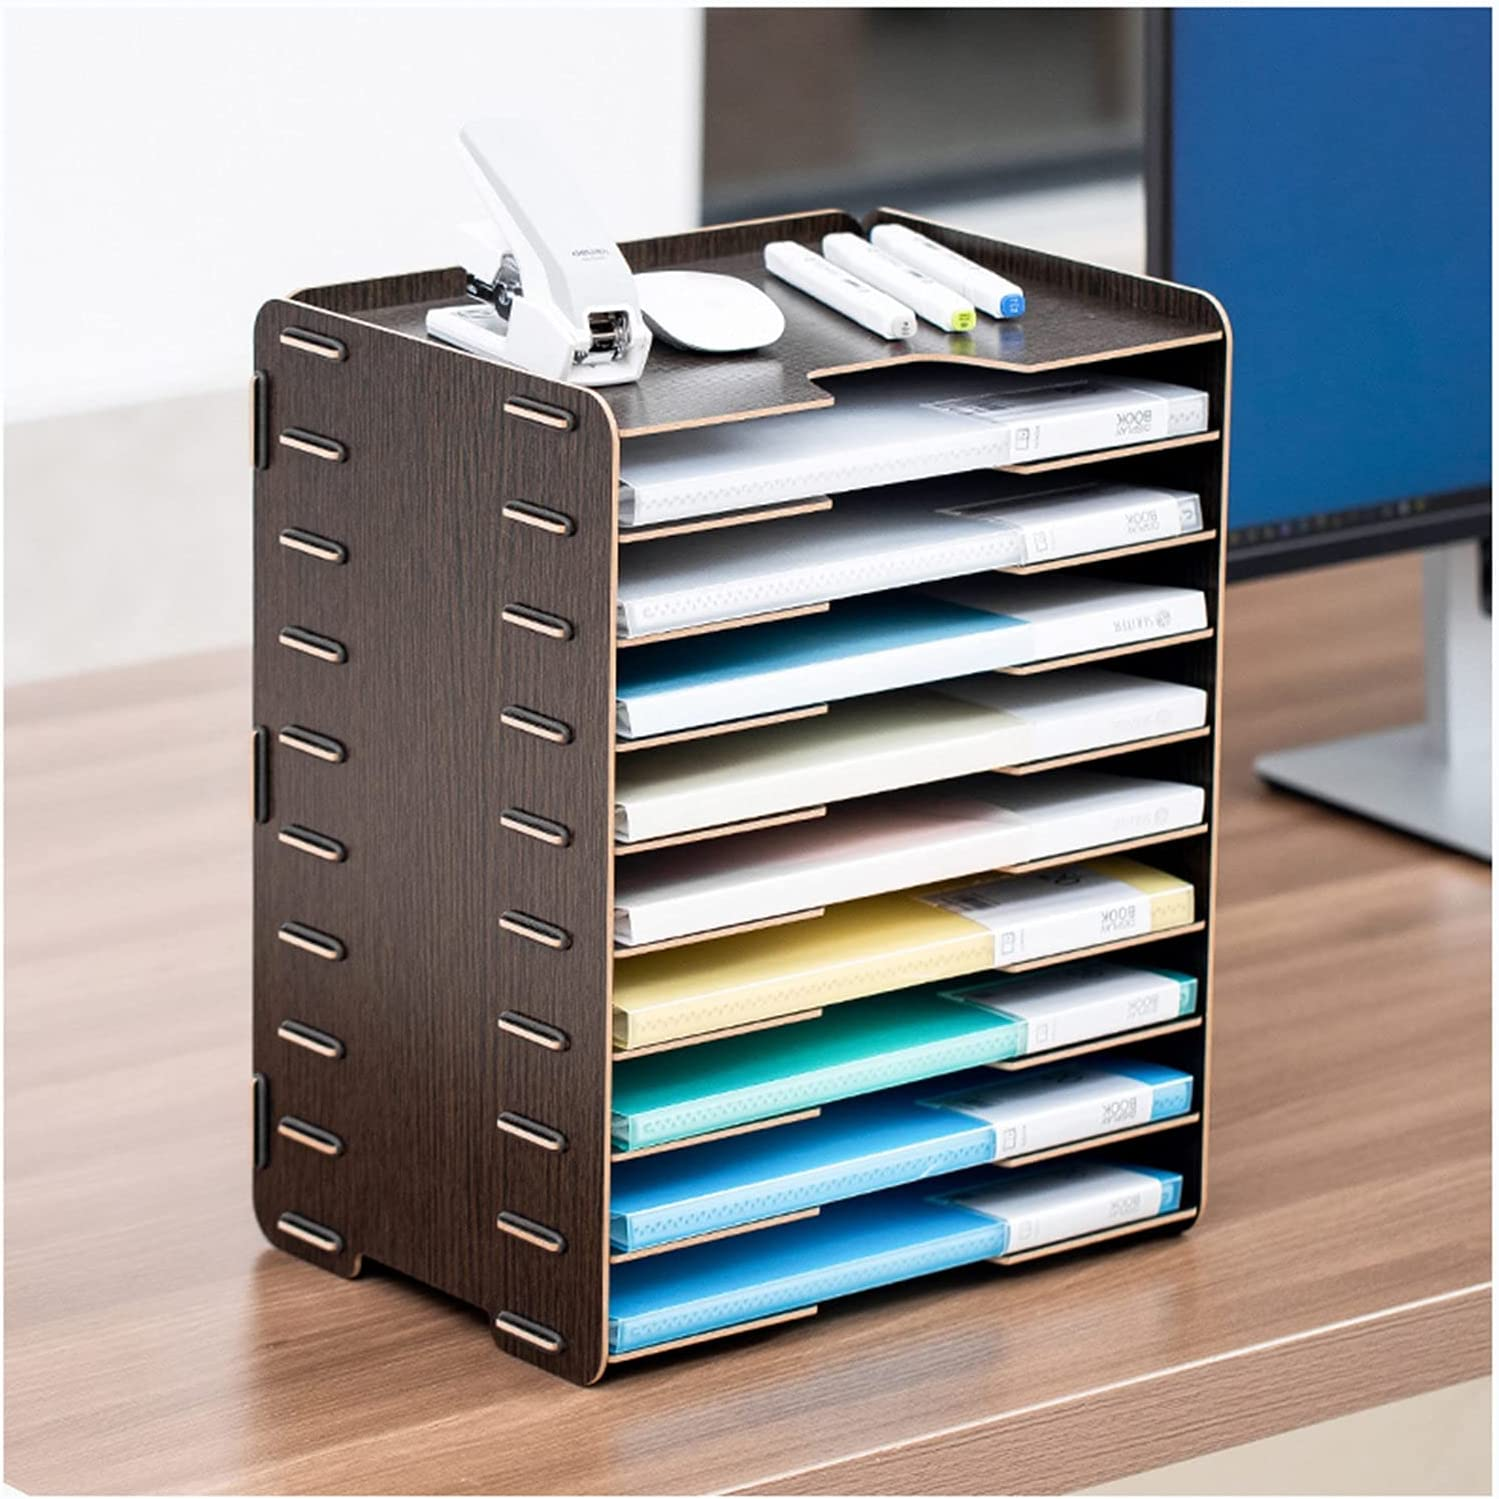 Tucson Mall Office Desk File Organizer 9 Slot Great interest Tray Paper Large Capaci Letter